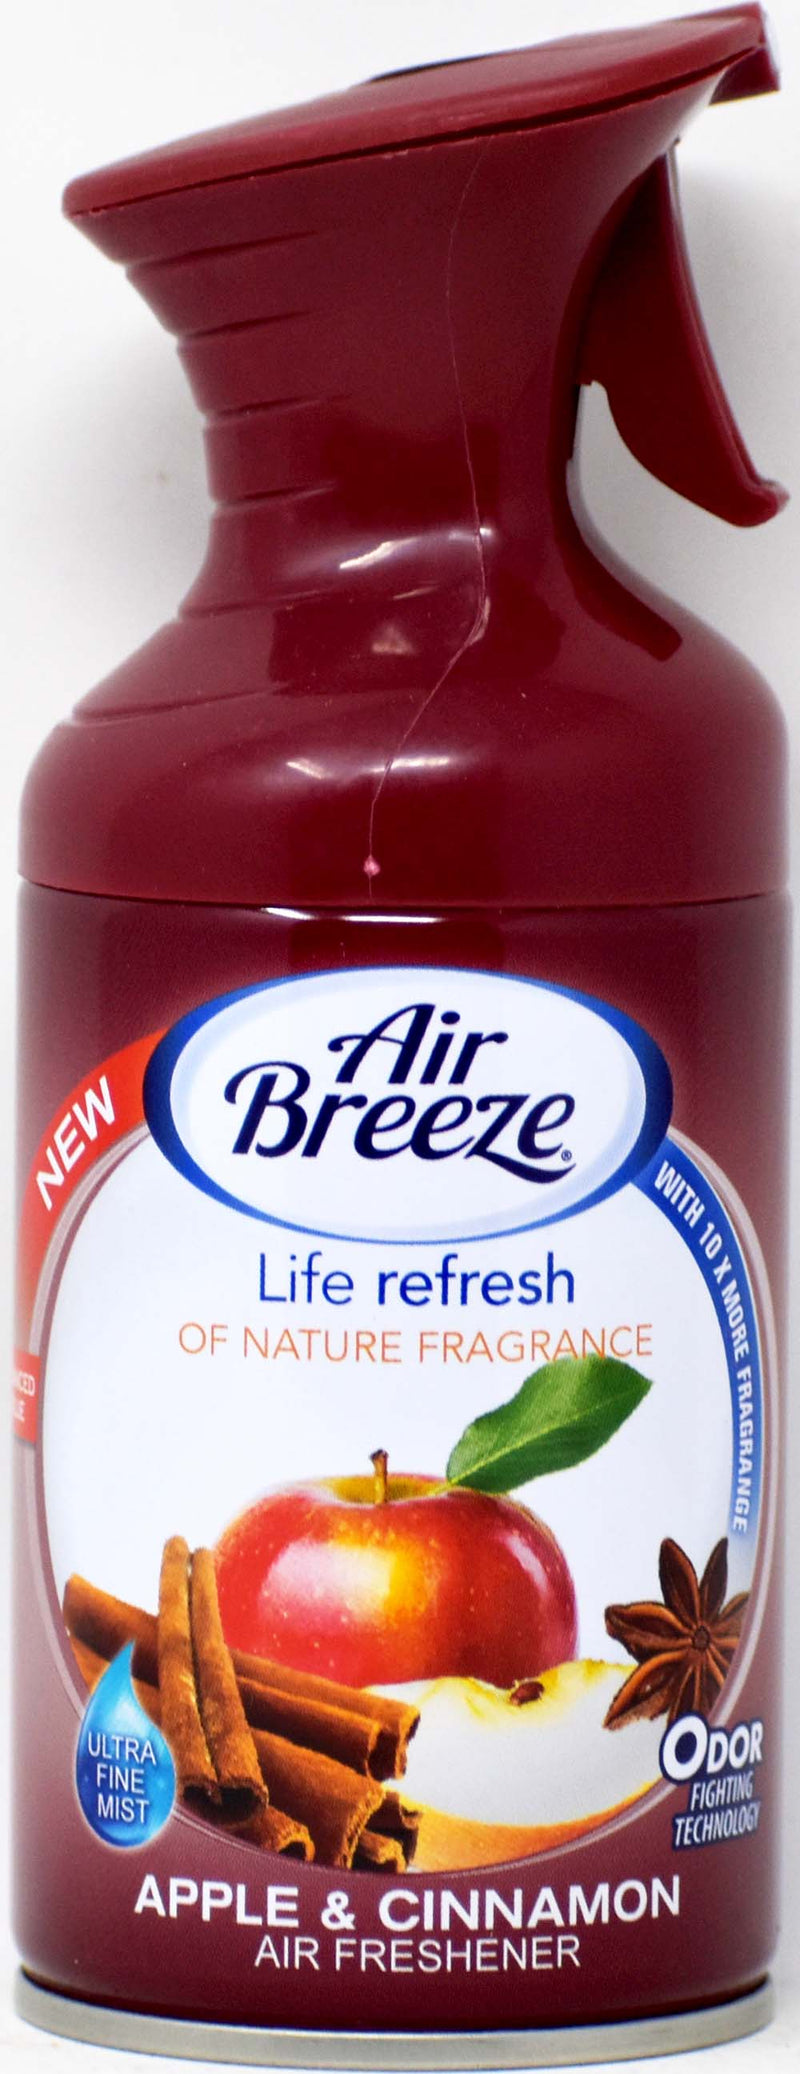 Mini Air Freshener - Apple & Cinnamon, 8.5 oz.